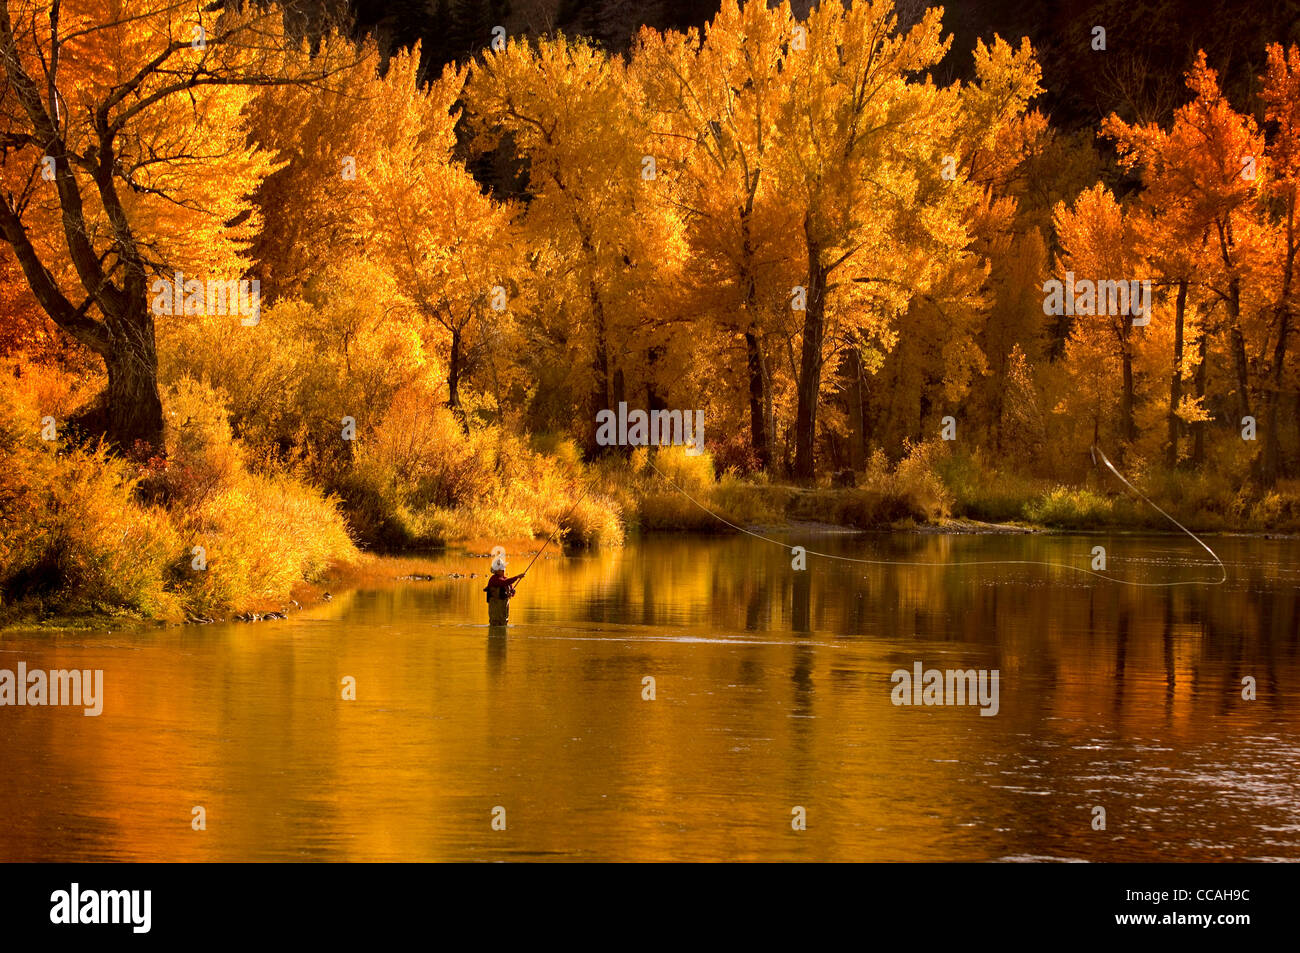 Fly fisherman spey casting for steelhead-rainbow trout in Autumns golden light, Main Salmon River, Idaho - Stock Image